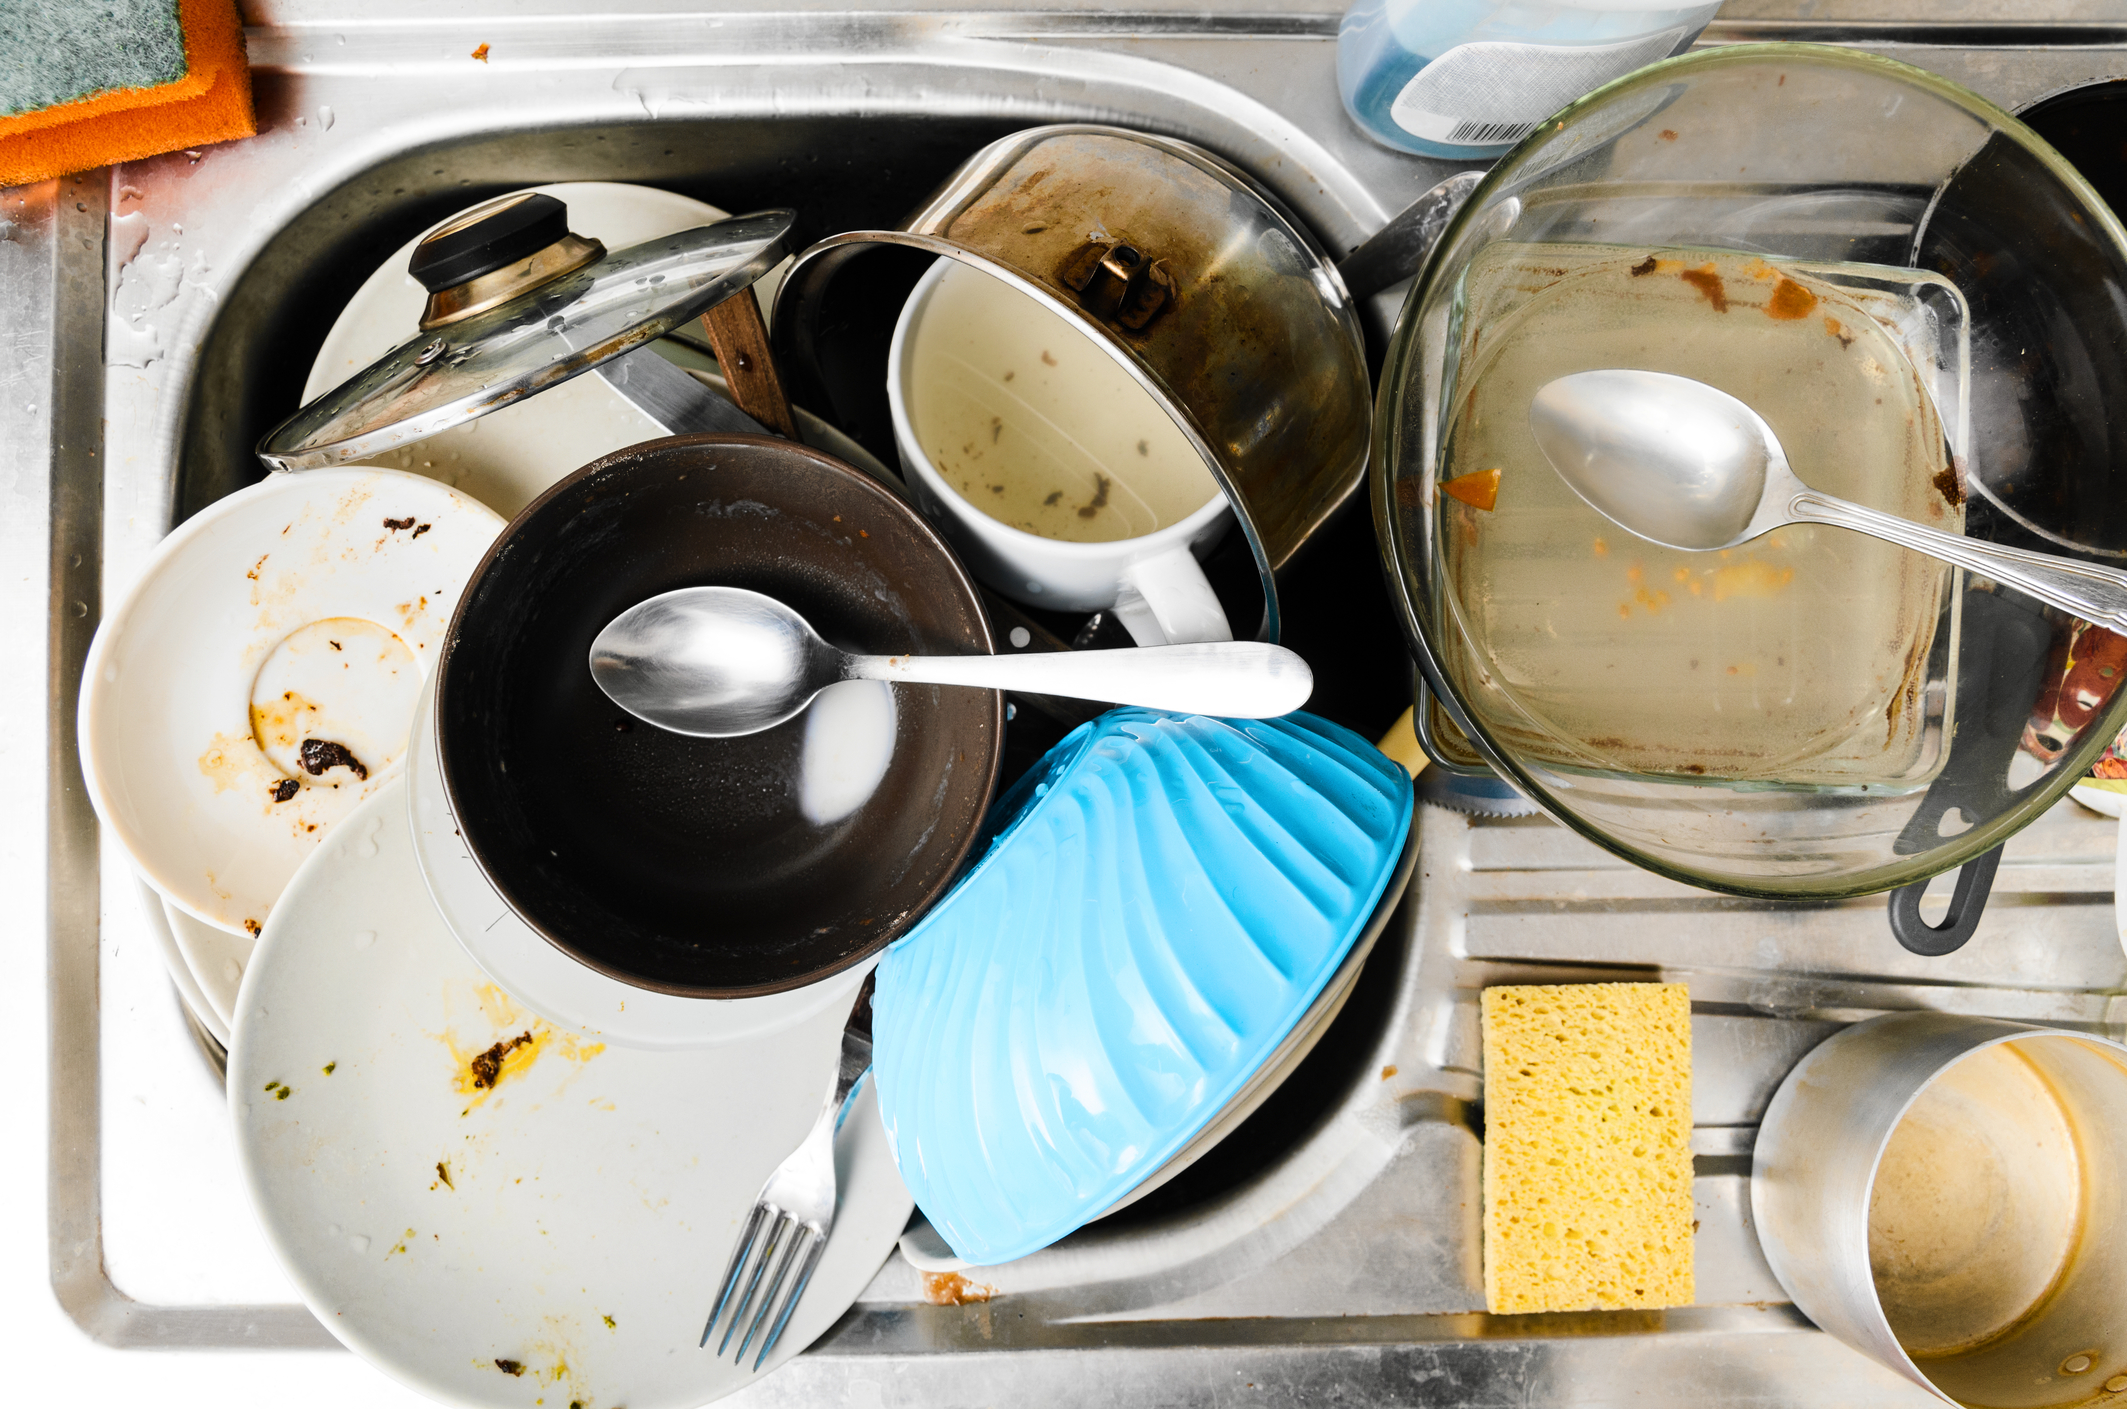 Good news if you hate hand washing dishes